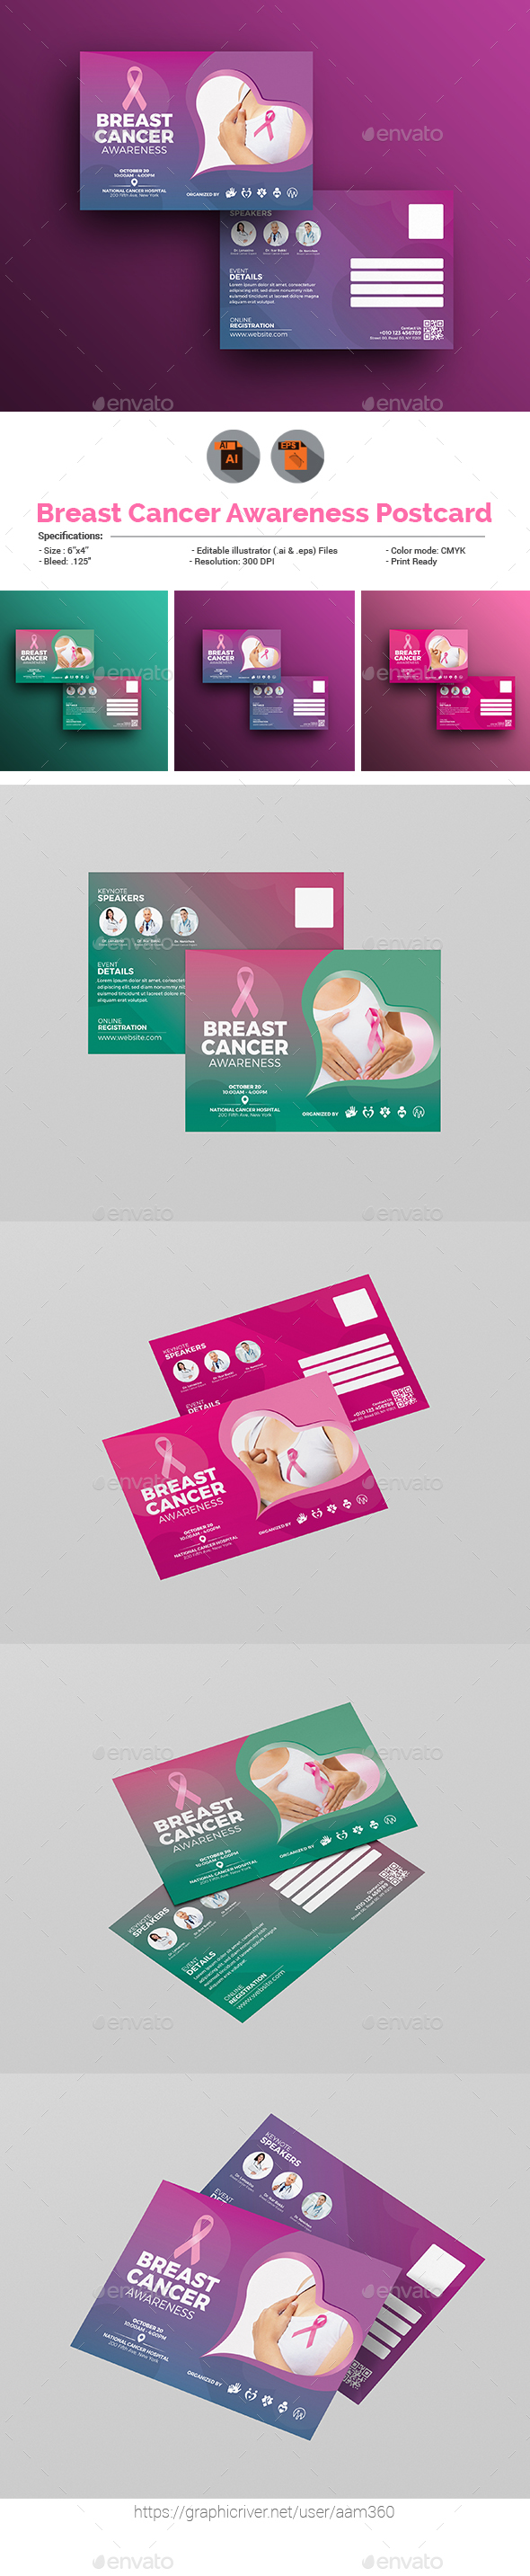 Breast Cancer Awareness Postcard - Cards & Invites Print Templates